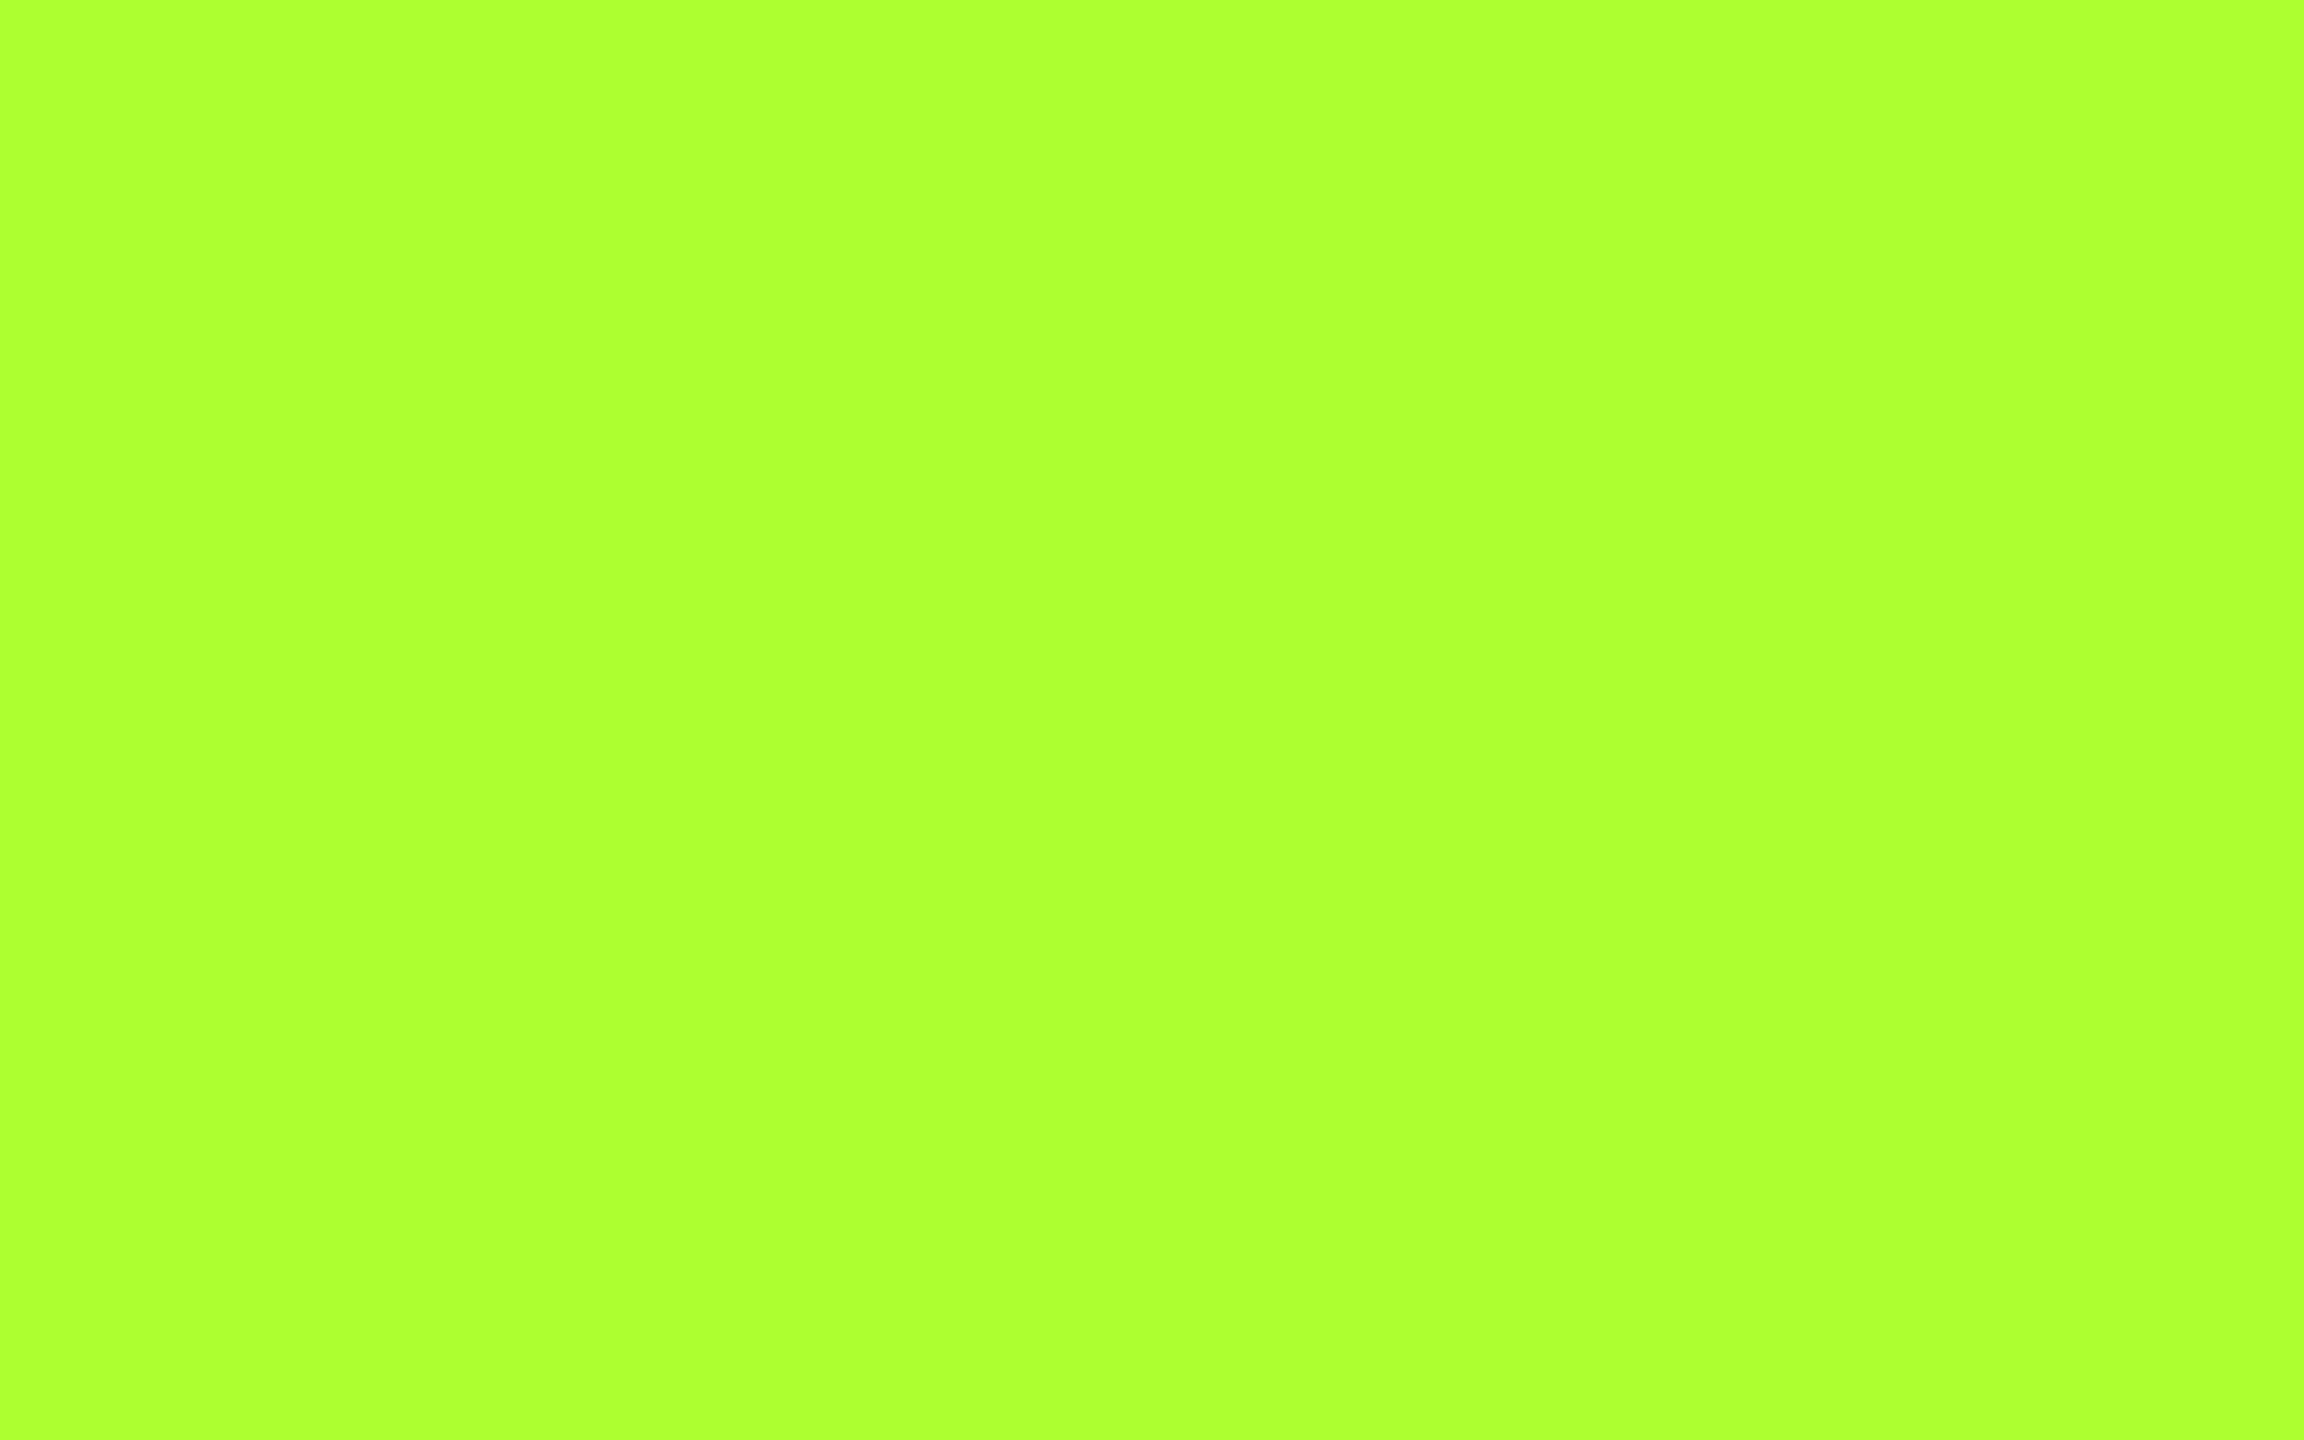 2304x1440 Green-yellow Solid Color Background